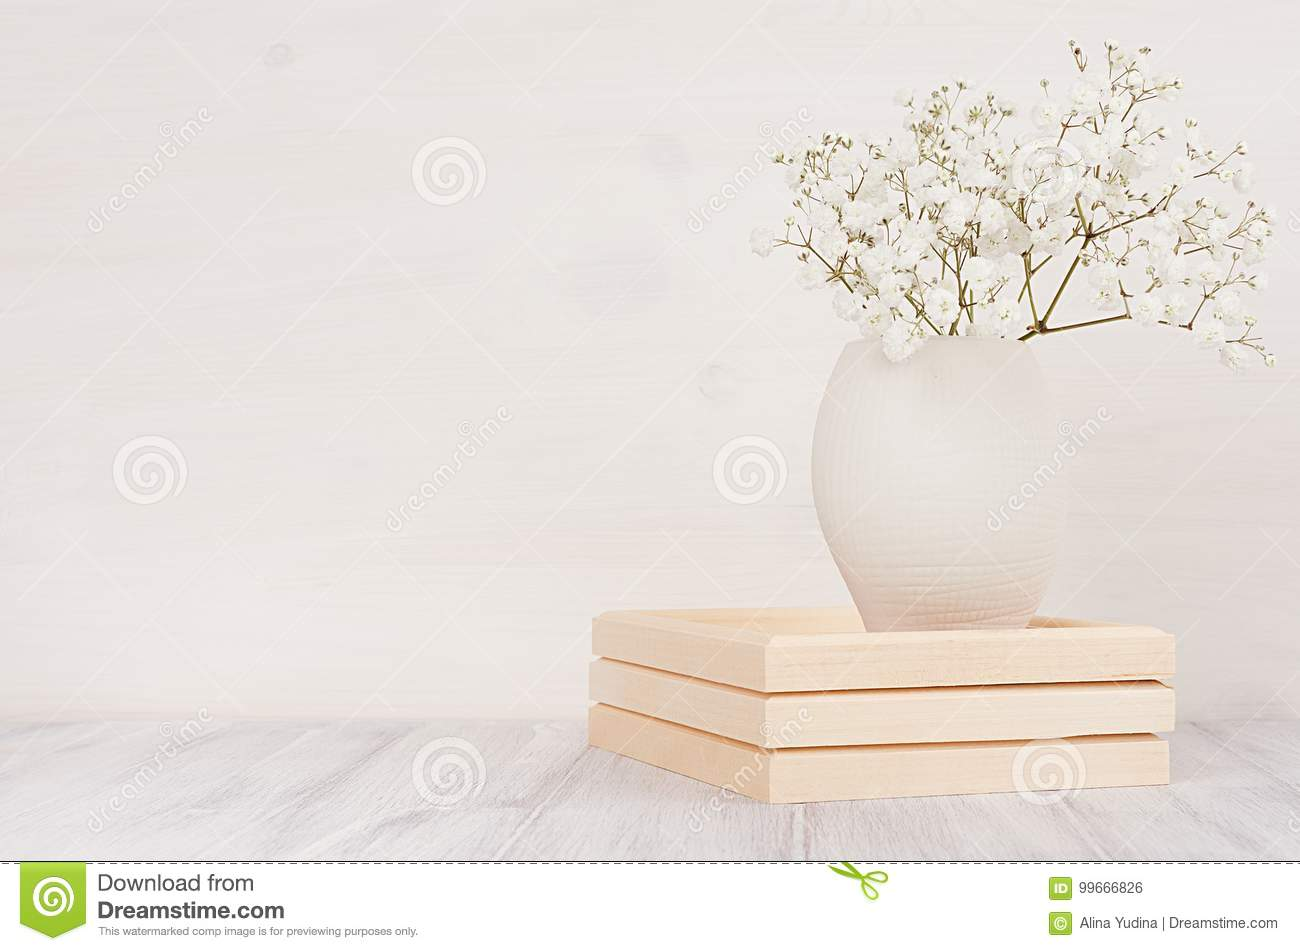 Soft Home Decor Of White Small Flowers In Ceramic Vase On White Wood